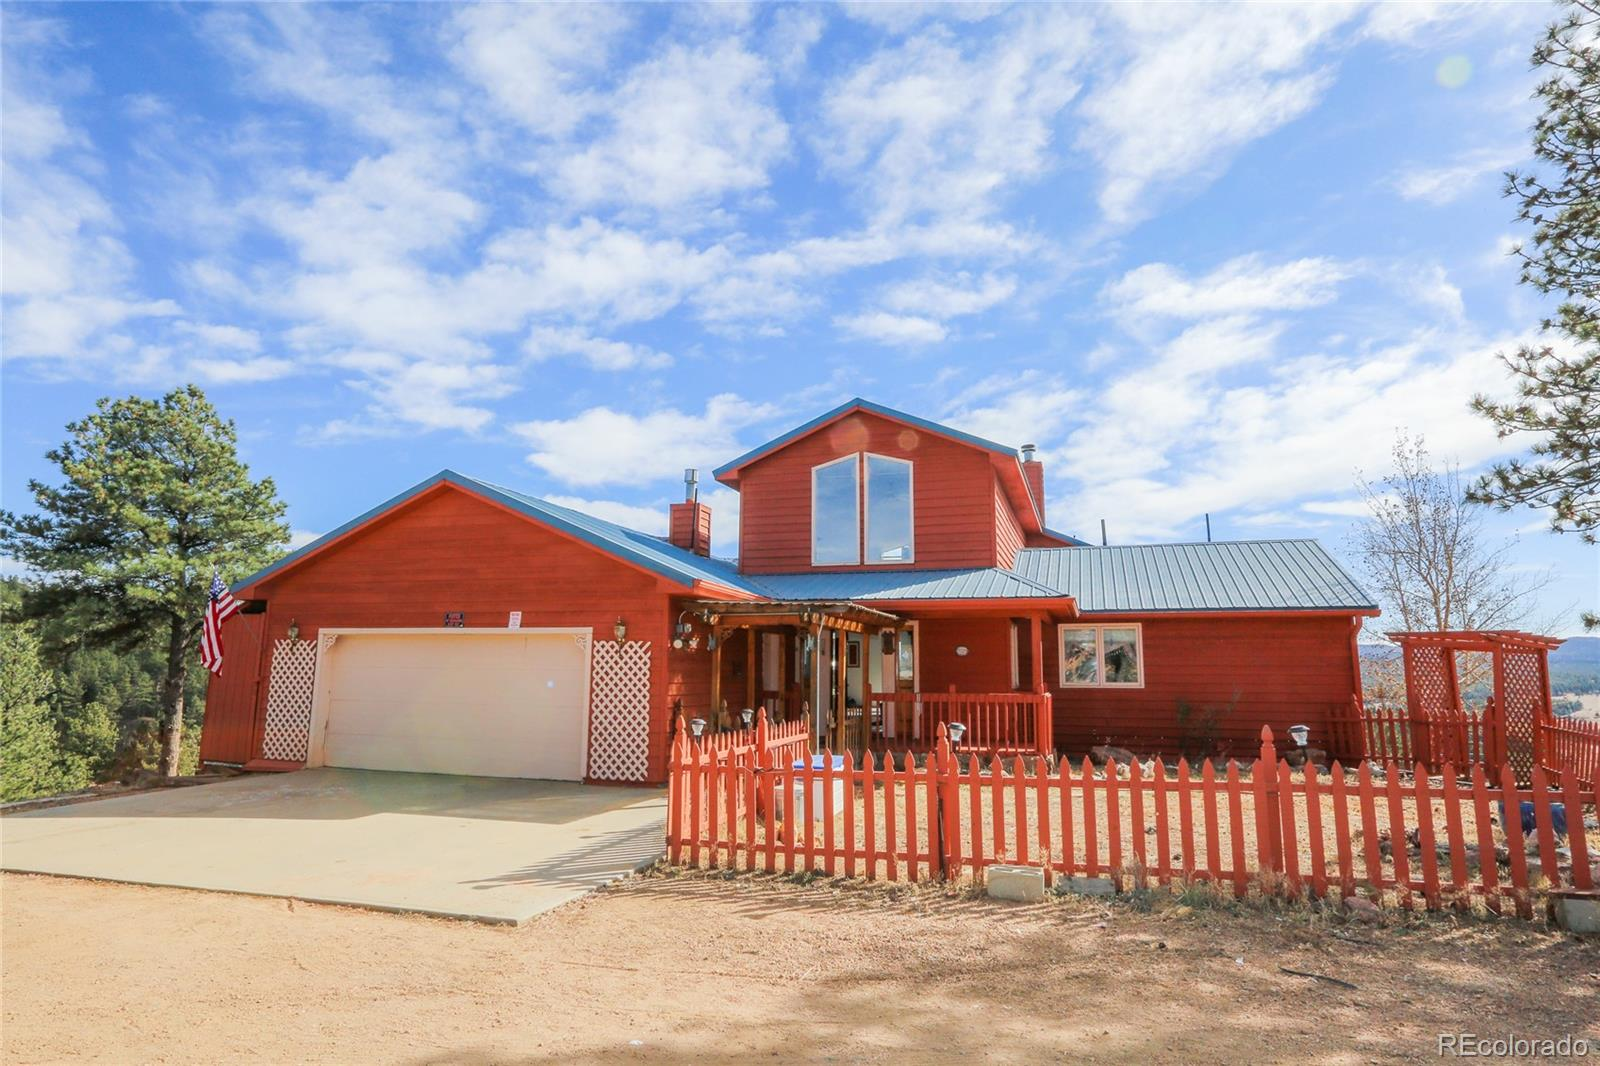 Views, Views and more Views - this beautiful 1.5 story 4744 sq ft home sits on 40 gorgeous acres. Location is not too far from Hwy 24, zoned A-1 and no covenants. Walk into the home and you are greeted by a wall of windows in the great room that has 180 degree views from Pikes Peak, Mt Pisgah and westerly mountain views.  Gourmet kitchen and living room walks out to the almost 900 sq ft of trex decking some partially covered and the other part open to the sunshine. Main level also encompasses a huge dining area and family room along with the spacious master suite also sporting the mountain views and attached 5 piece master bath. Loft area makes for great office space or reading nook. Lower level encompasses 4 more spacious bedrooms, 2 bathrooms, family room, 2nd kitchen plus 2 more bonus rooms. Don't forget there is an elevator that goes between the main level and basement. Too much to put all down on paper, come and see for yourself. Welcome to Rocky Mountain living at its finest!